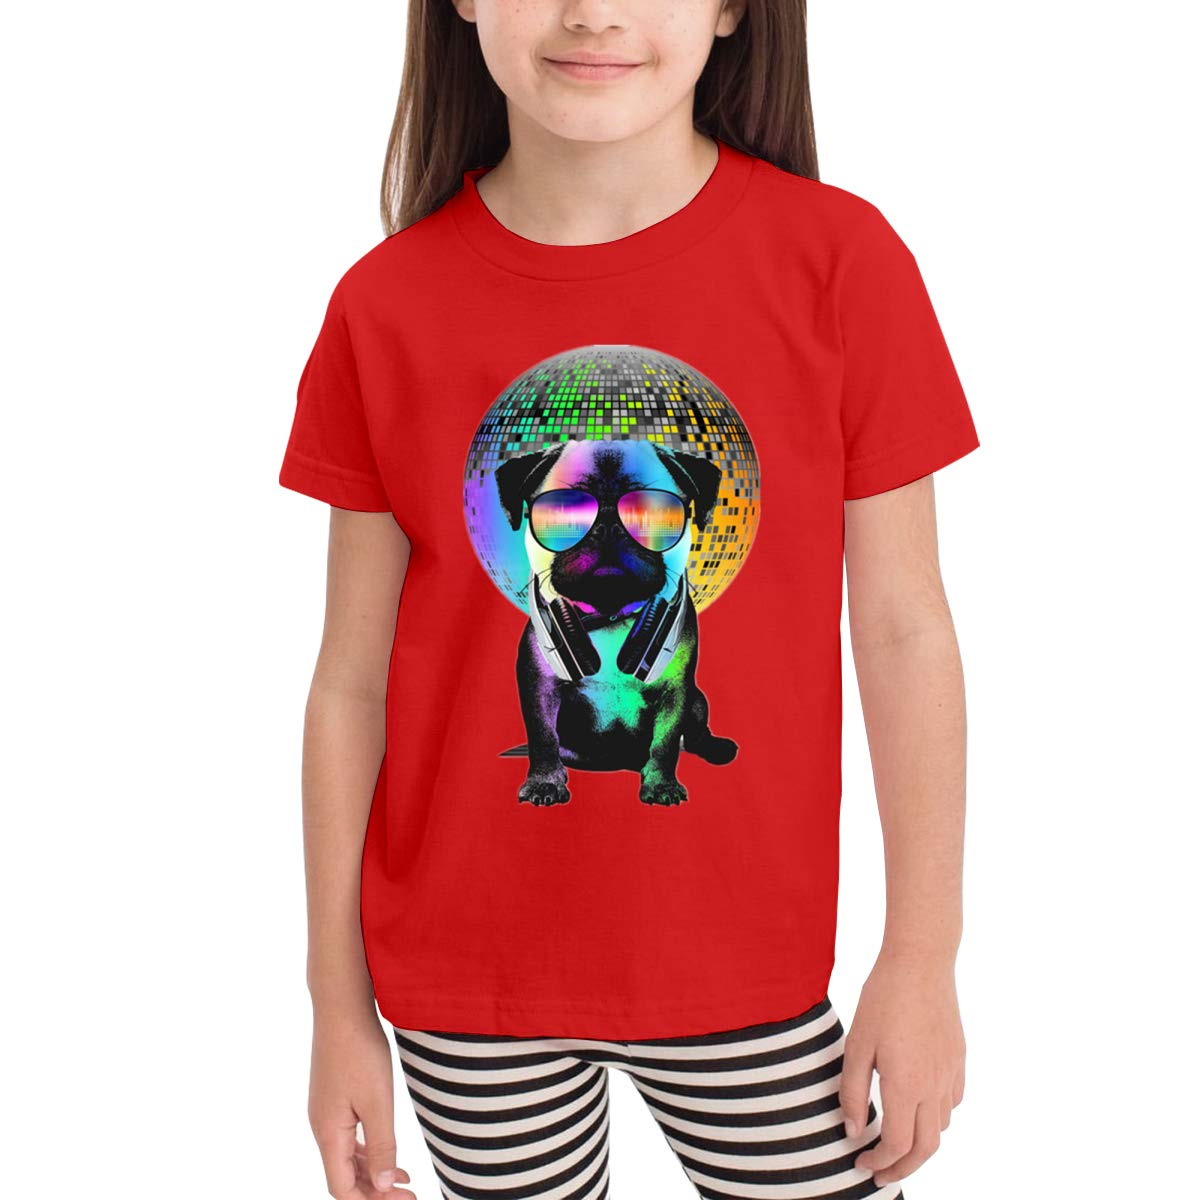 Onlybabycare Disco Pug 100/% Cotton Toddler Baby Boys Girls Kids Short Sleeve T Shirt Top Tee Clothes 2-6 T